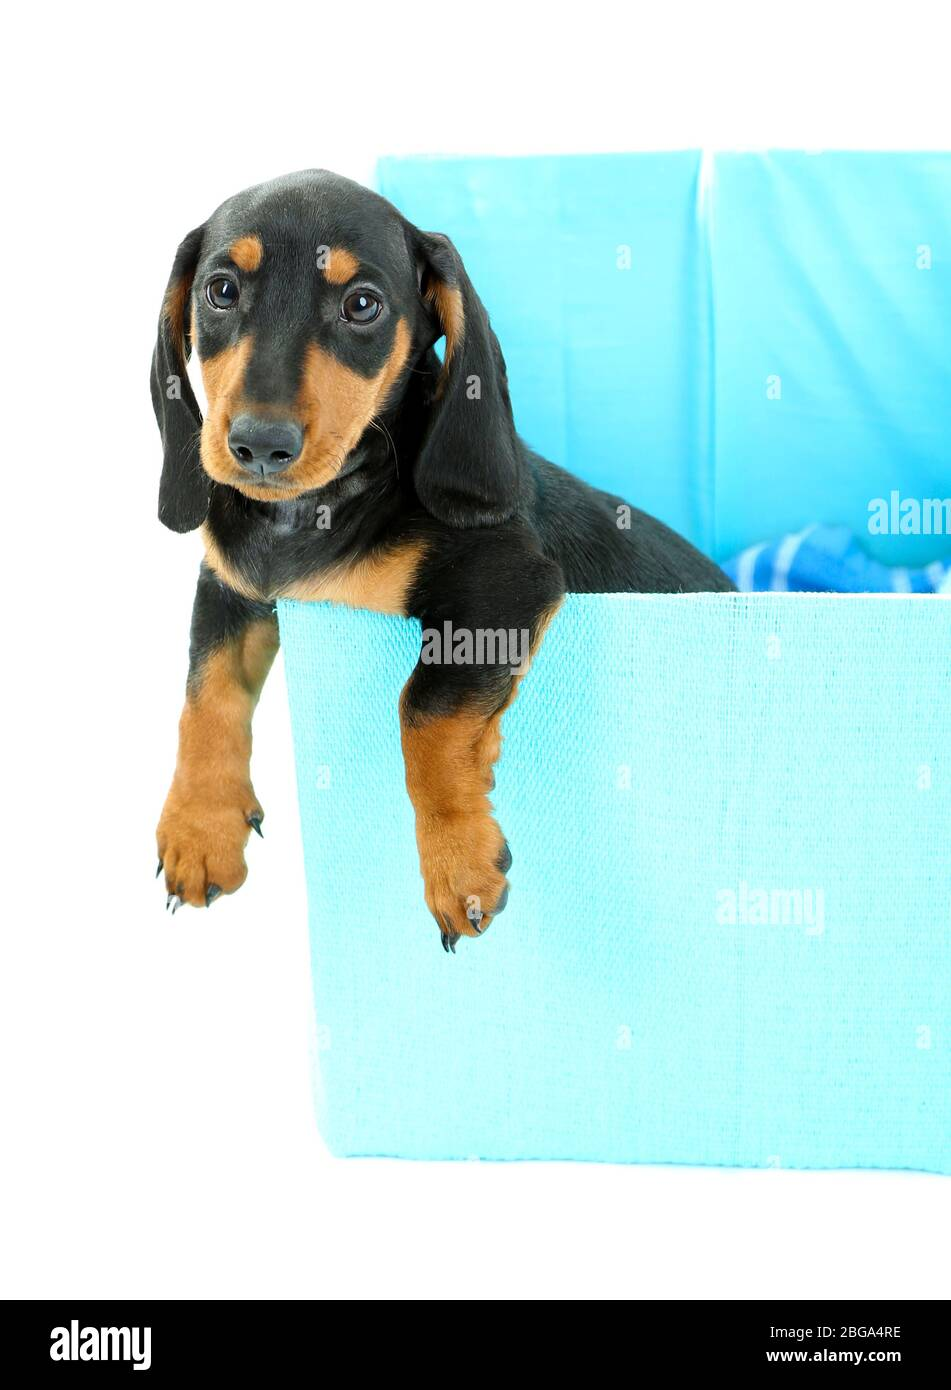 Cute Dachshund Puppy In Box Isolated On White Stock Photo Alamy